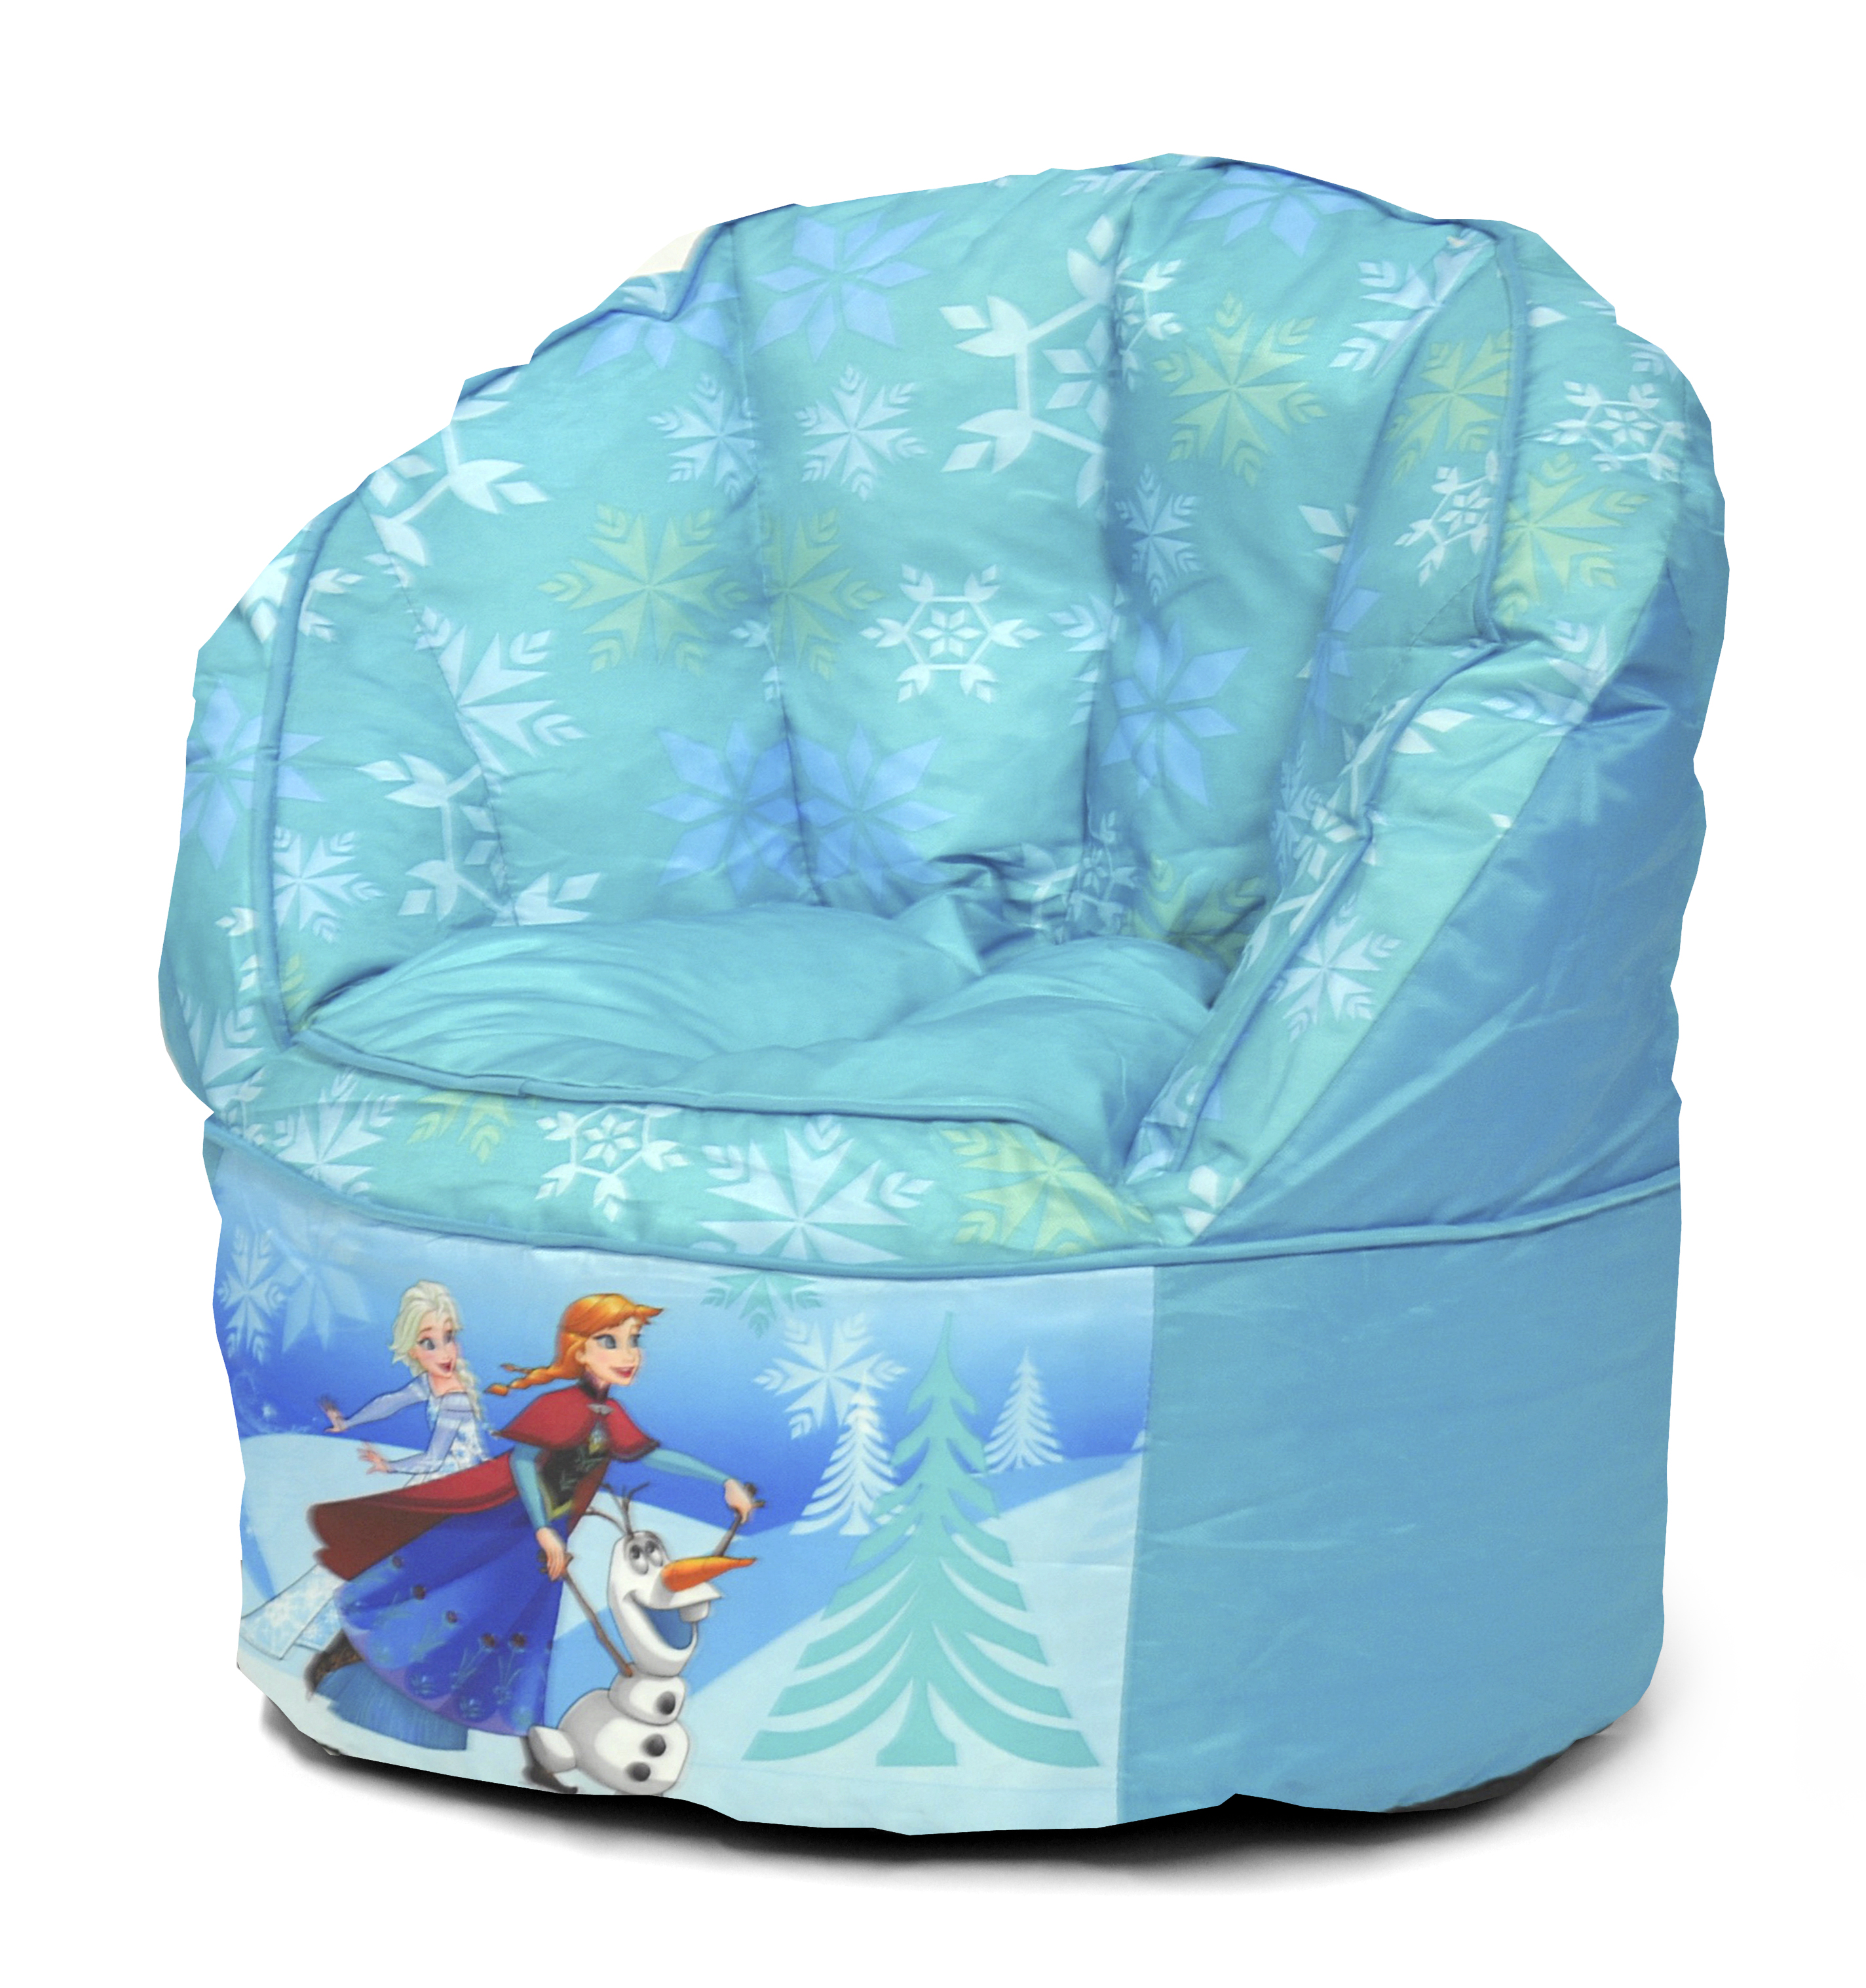 Disney Frozen Kids Bean Bag Chair